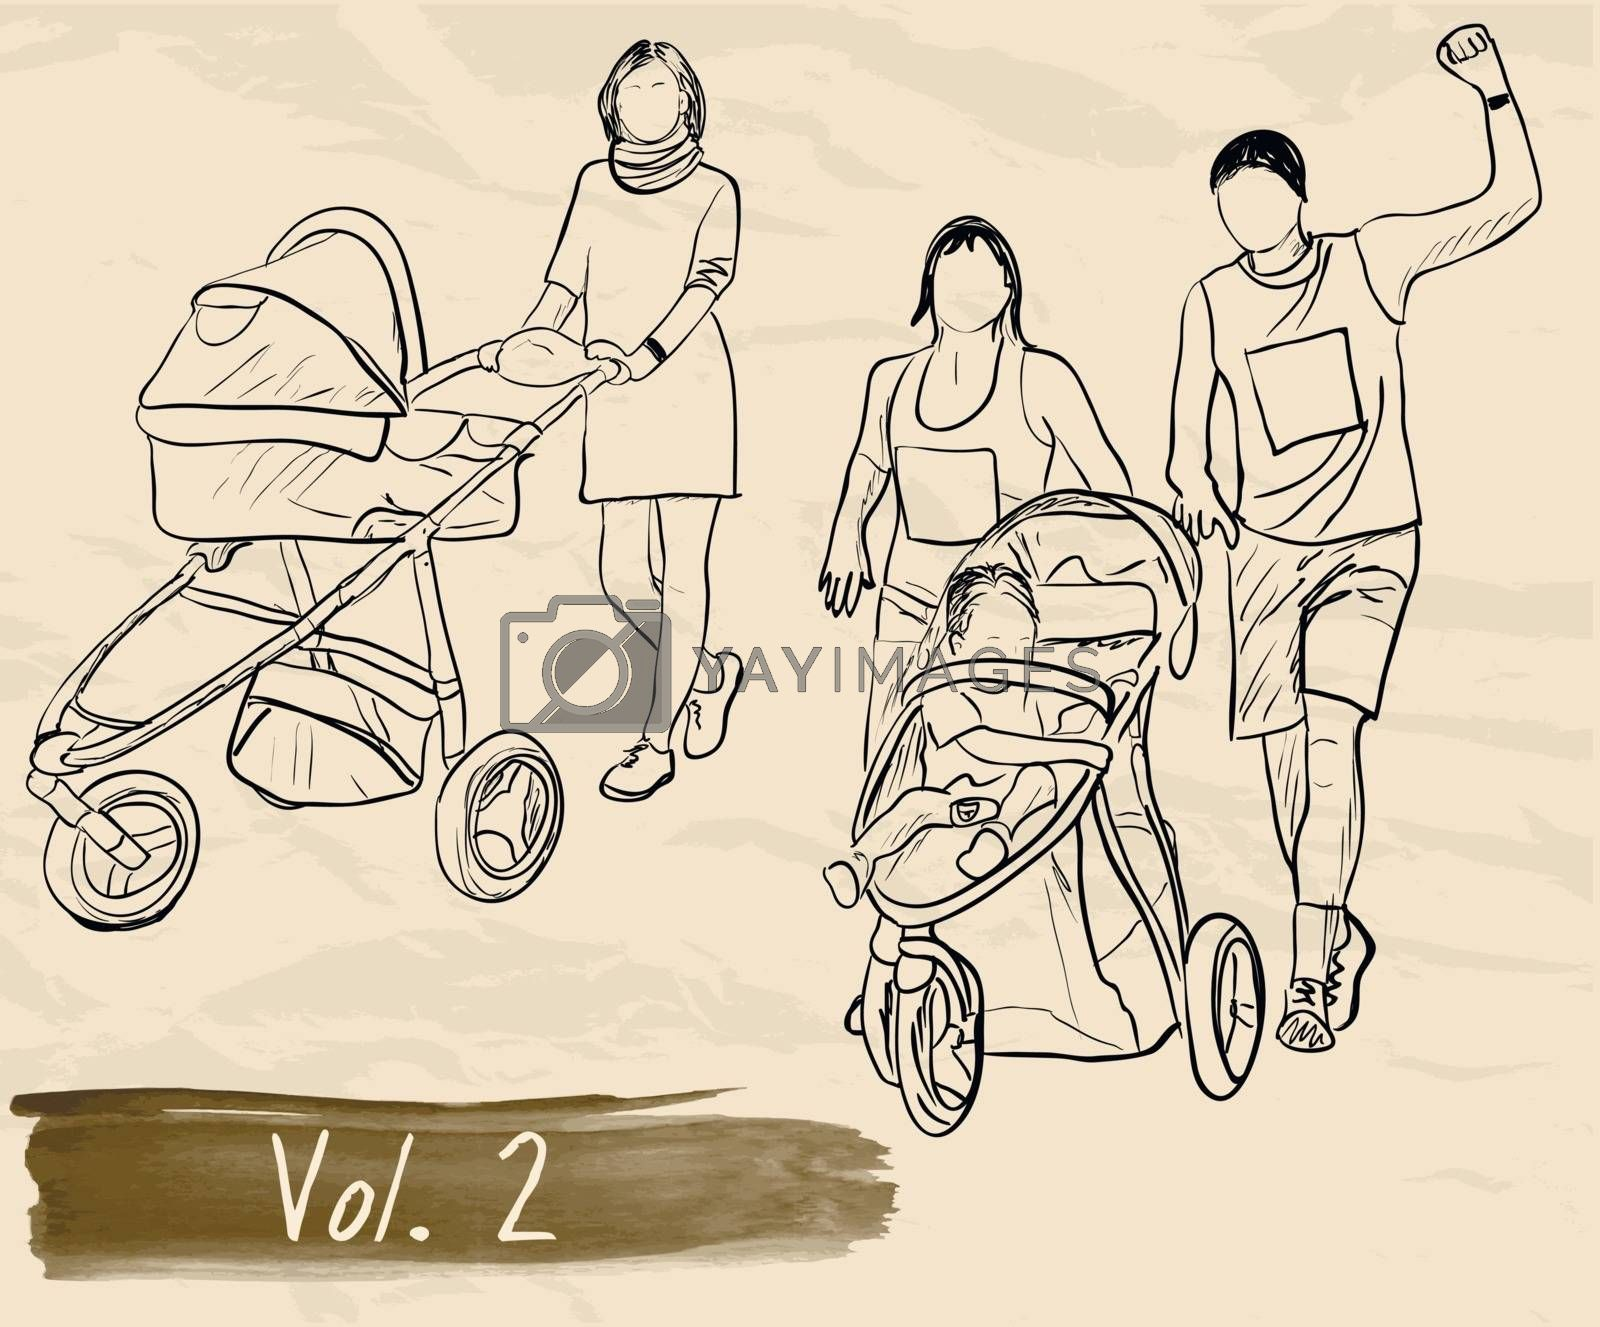 Ser with silhouettes about family. Eps10 vector illustration.